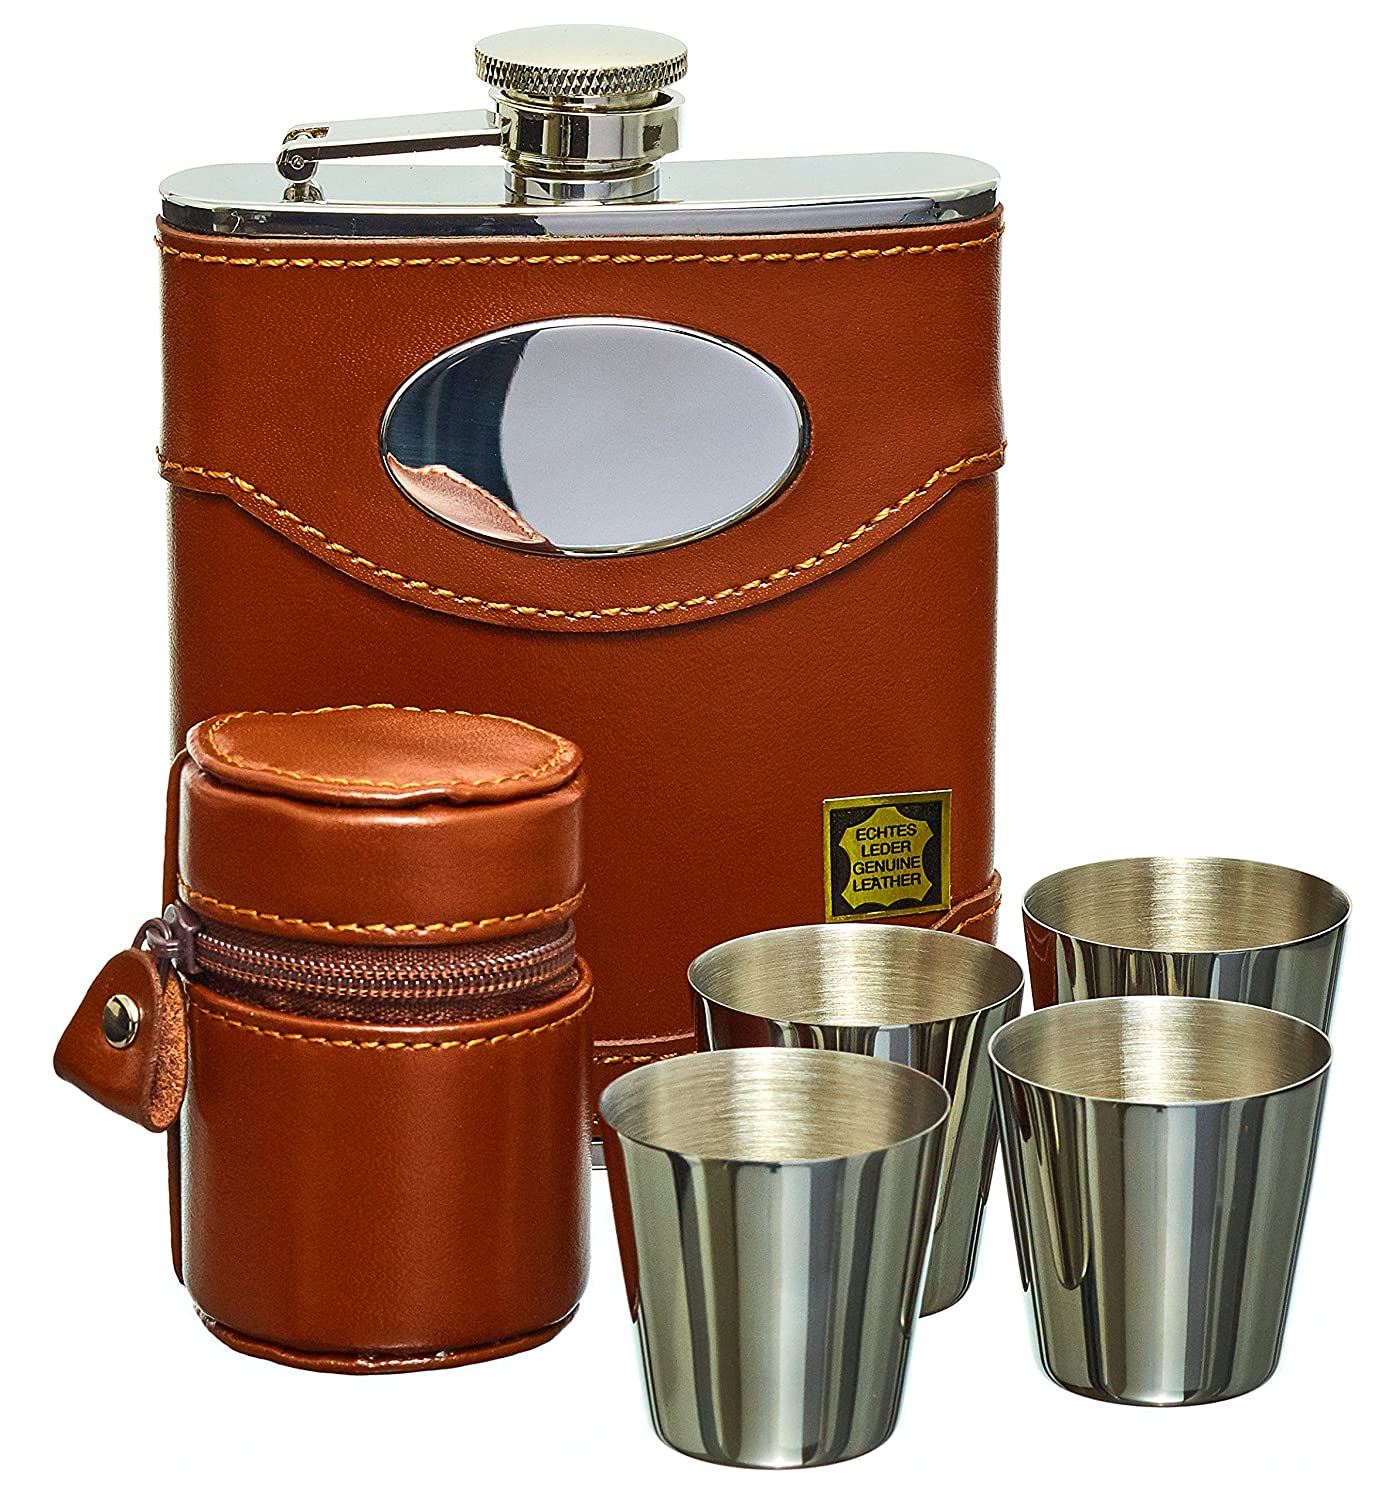 Hip Flask Set, Whiskey Flask Set - 6oz Brown Leather Hip Flask With Engravable Silver Plate + 4 Stainless Steel Cups, Made From Premium Grade Spanish Leather Including Gift Box From Gentlemans Gifts Online